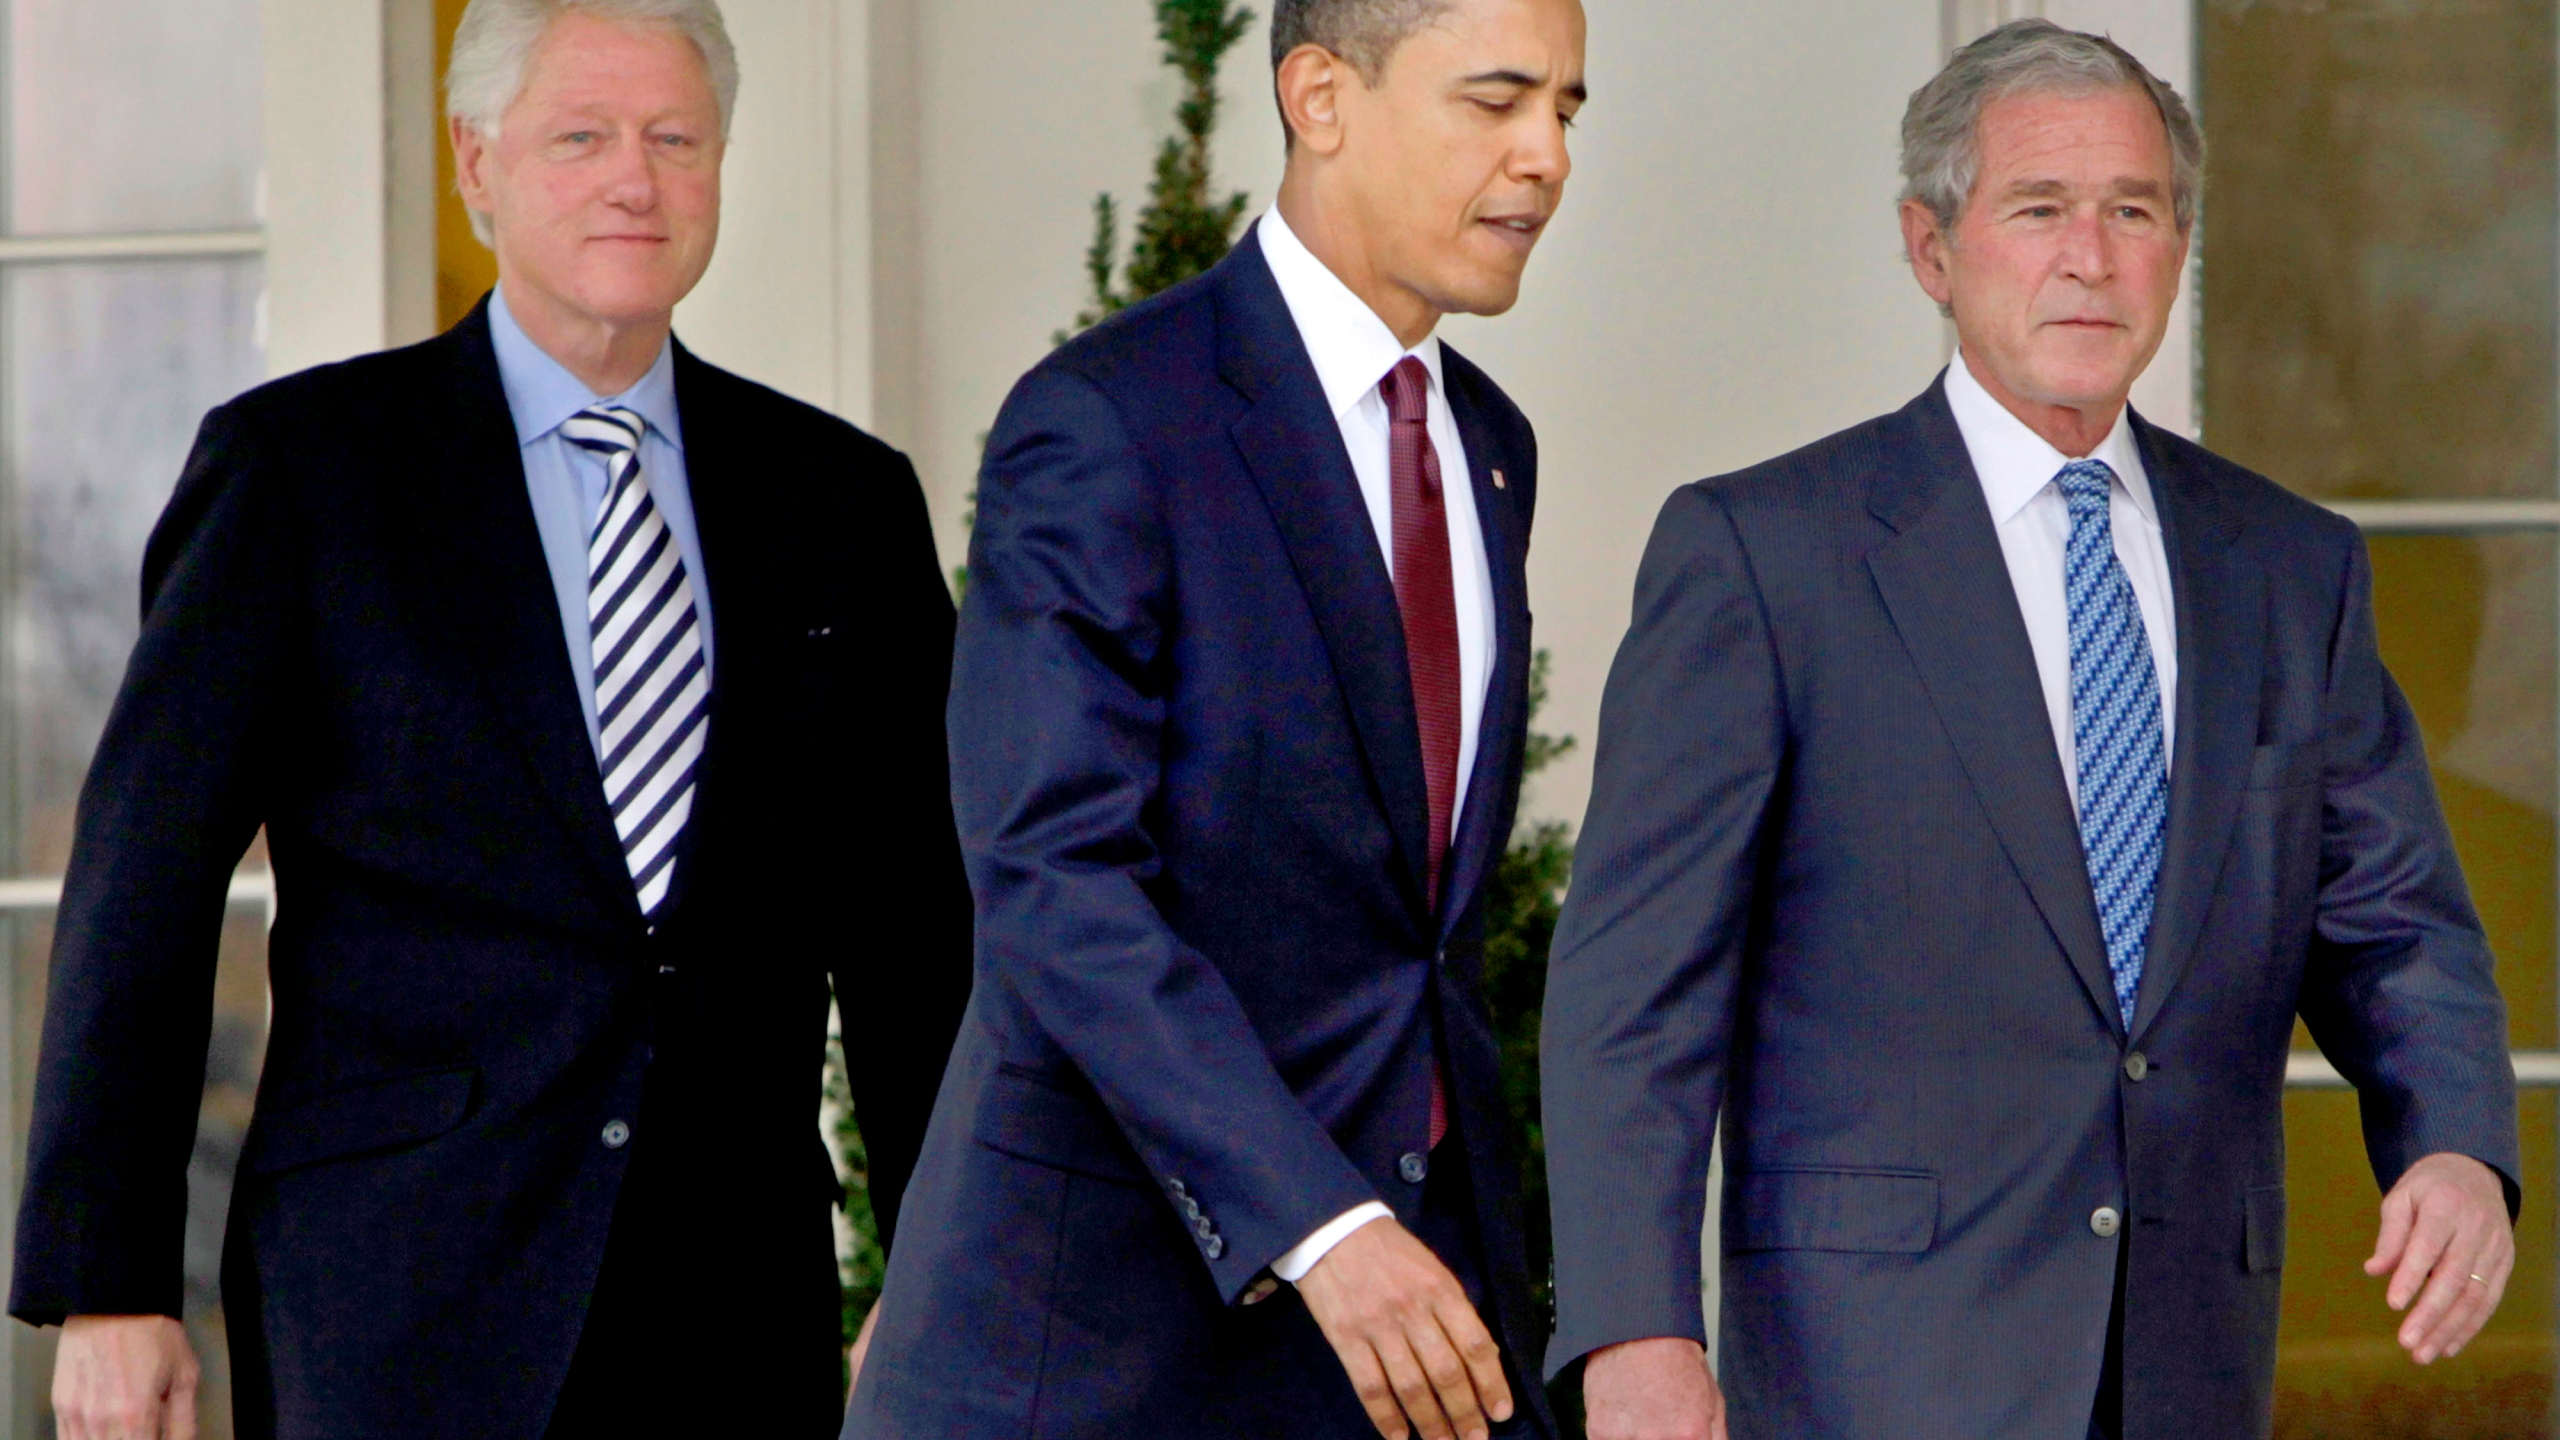 Barack Obama, Bill Clinton, George W. Bush